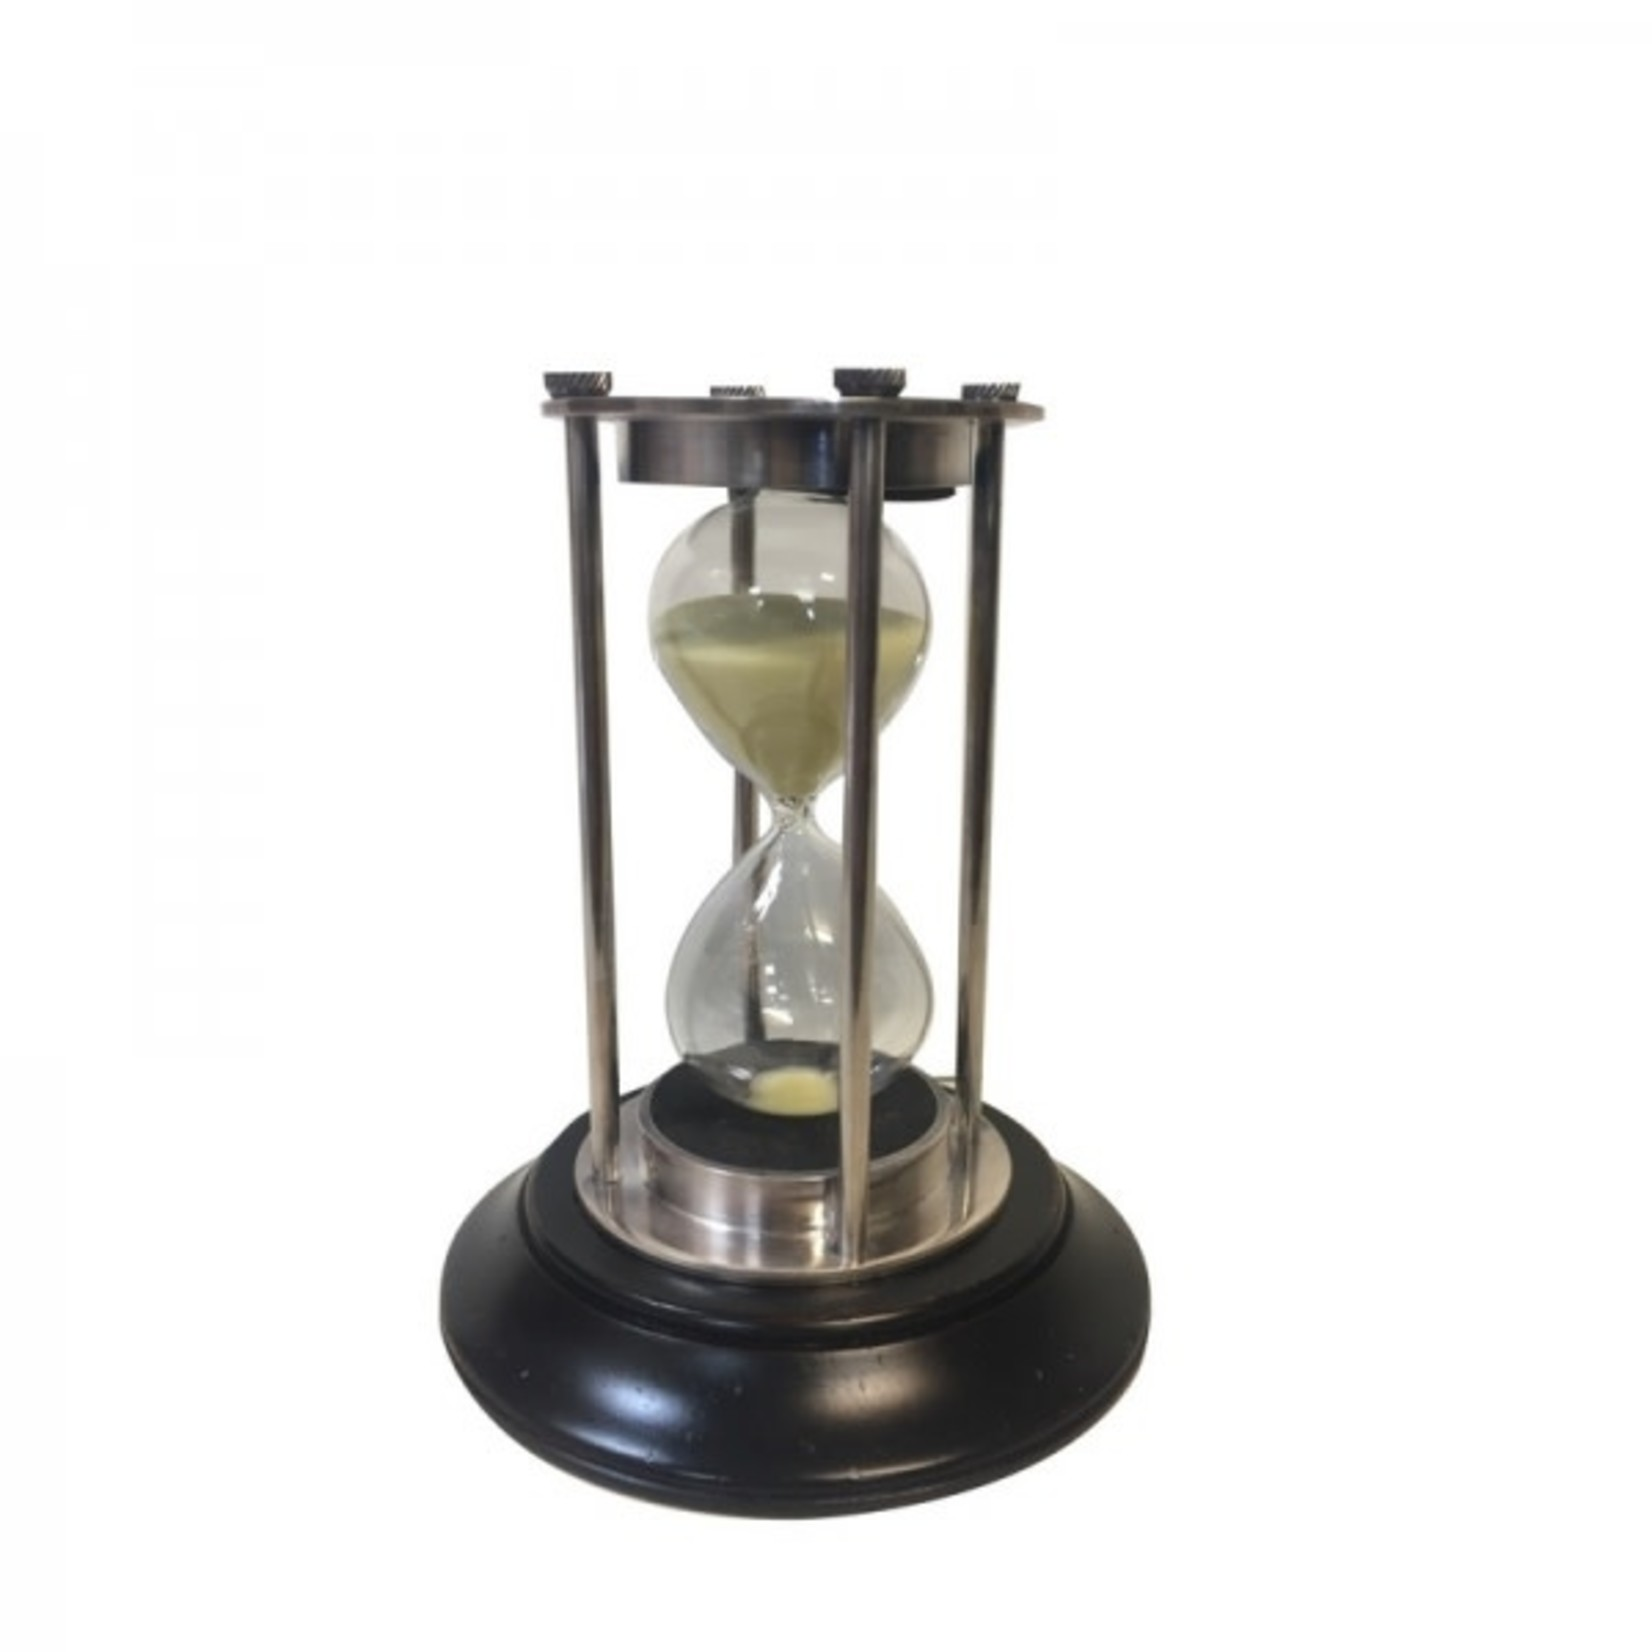 AUTHENTIC MODELS HOURGLASS SILVER 30 MINUTE